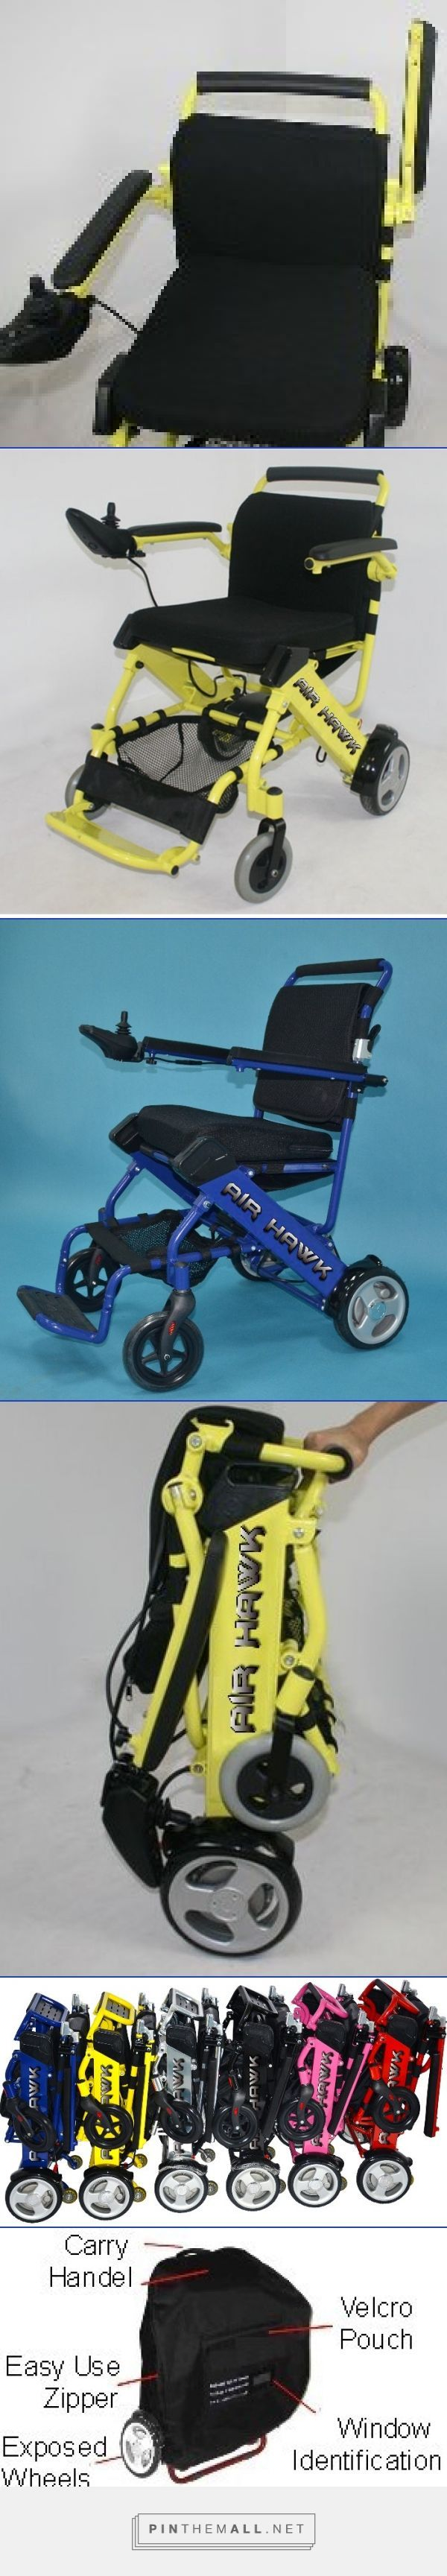 The lightest portable electric wheelchair  that goes off terrain, folds in under 5 seconds, and fits into a trunk. The Air Hawk Portable Lightweight Power Wheelchair. - created via https://pinthemall.net